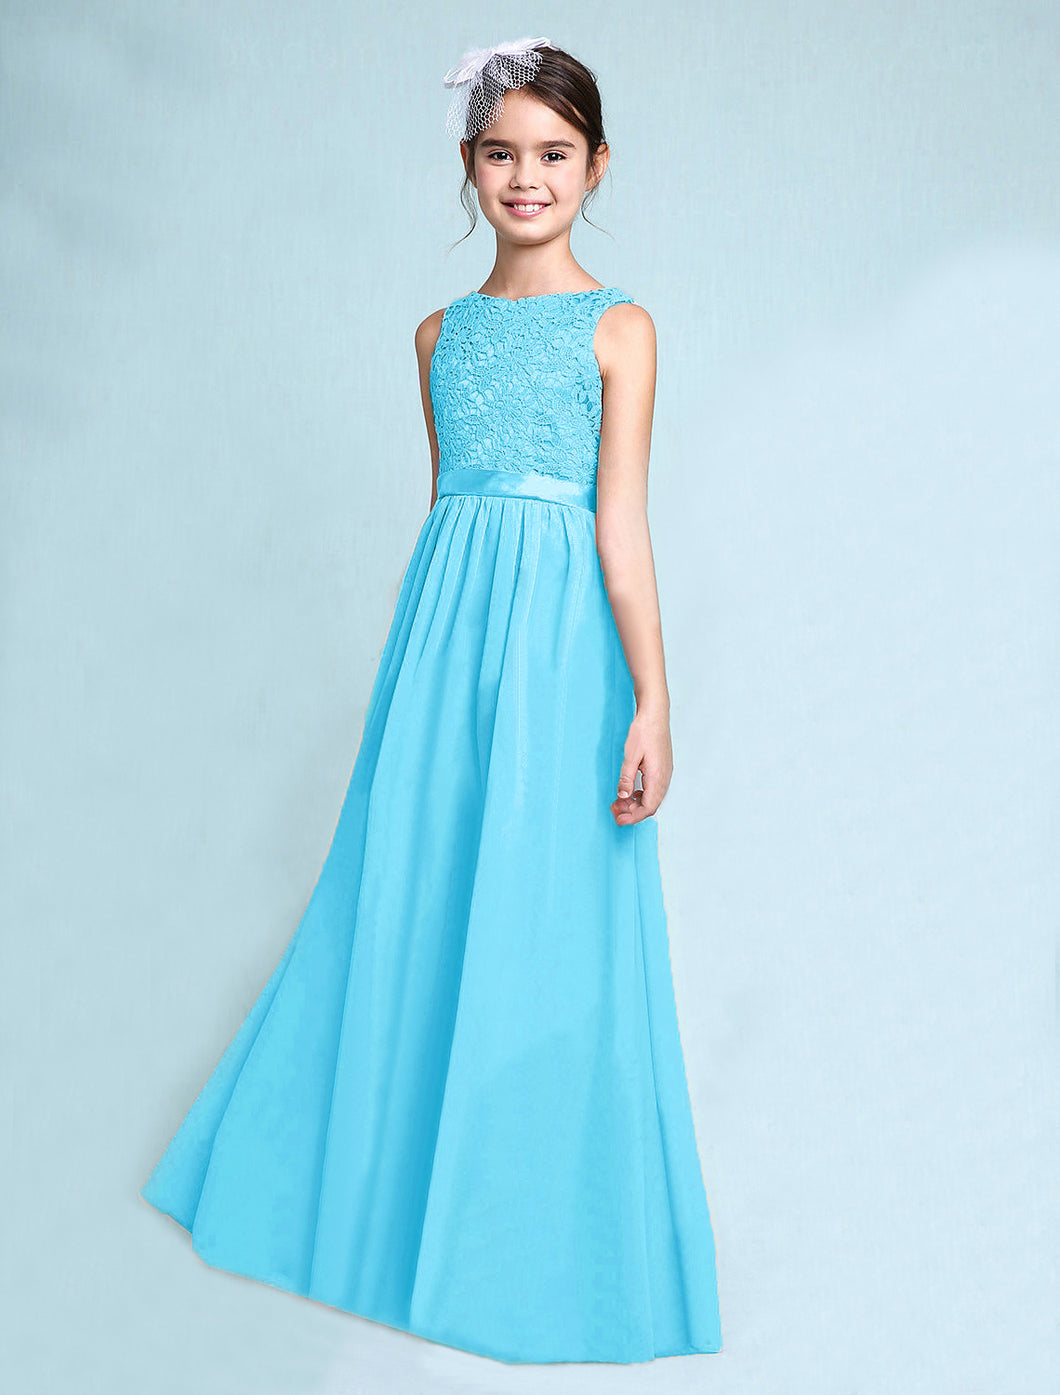 Melody Aqua Spa Blue Turquoise lace chiffon long sleeveless junior bridesmaid flowergirl dress loulous bridal boutique uk